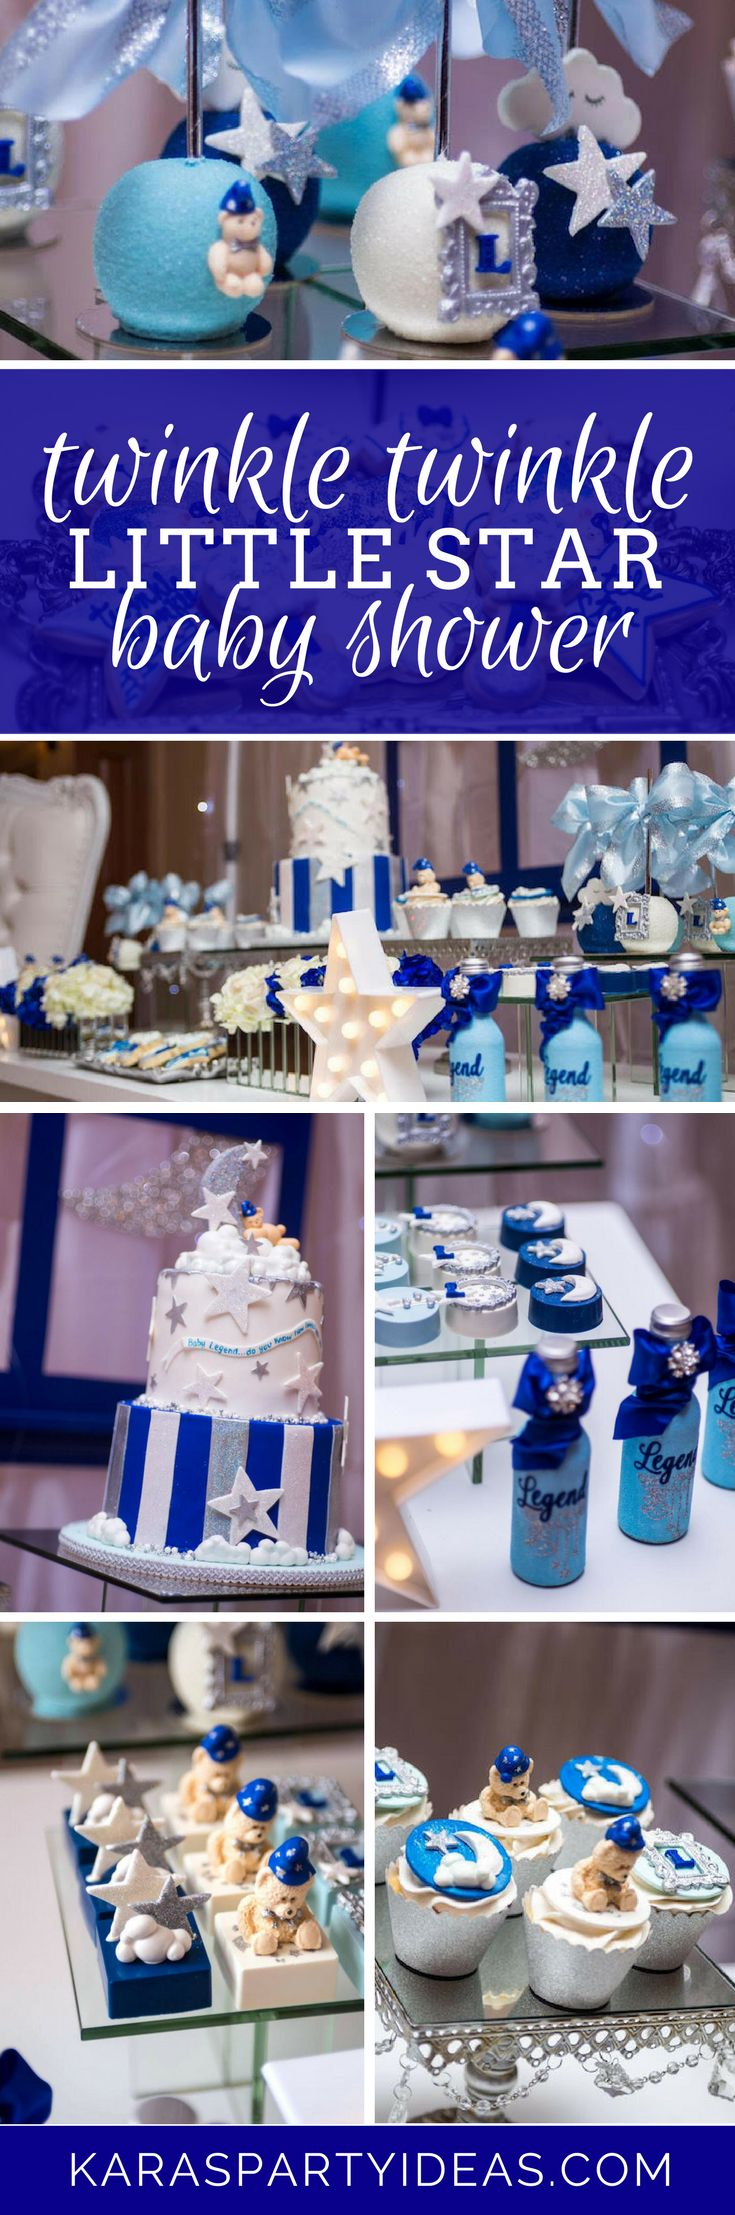 Twinkle Twinkle Little Star Baby Shower via Kara's Party Ideas - KarasPartyIdeas.com